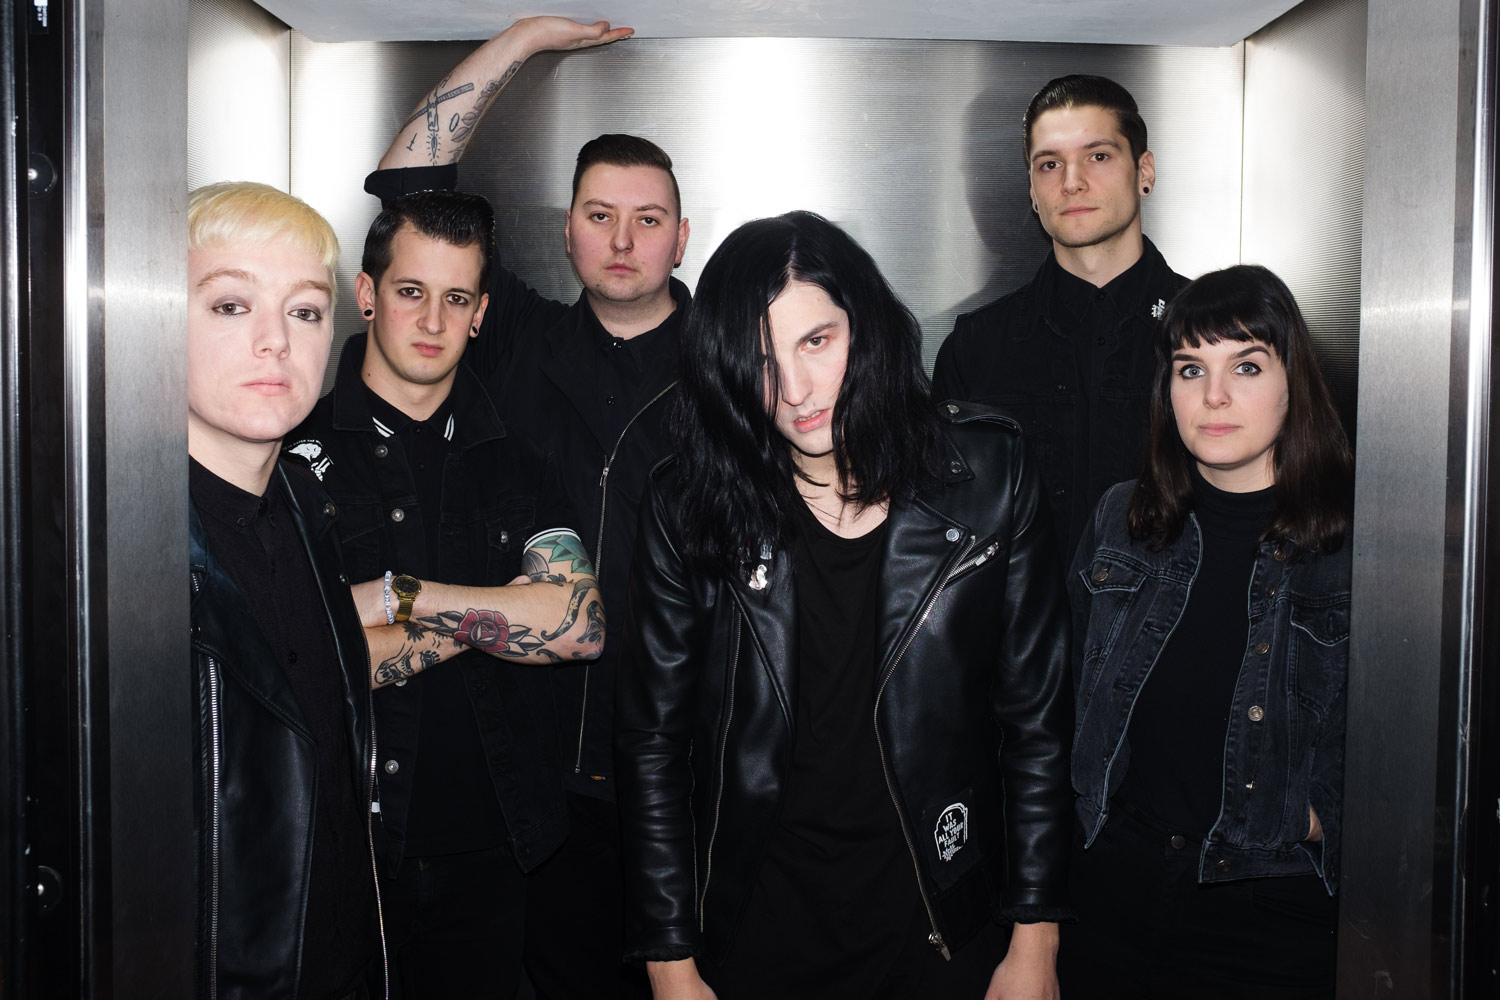 How to disappear completely: Creeper